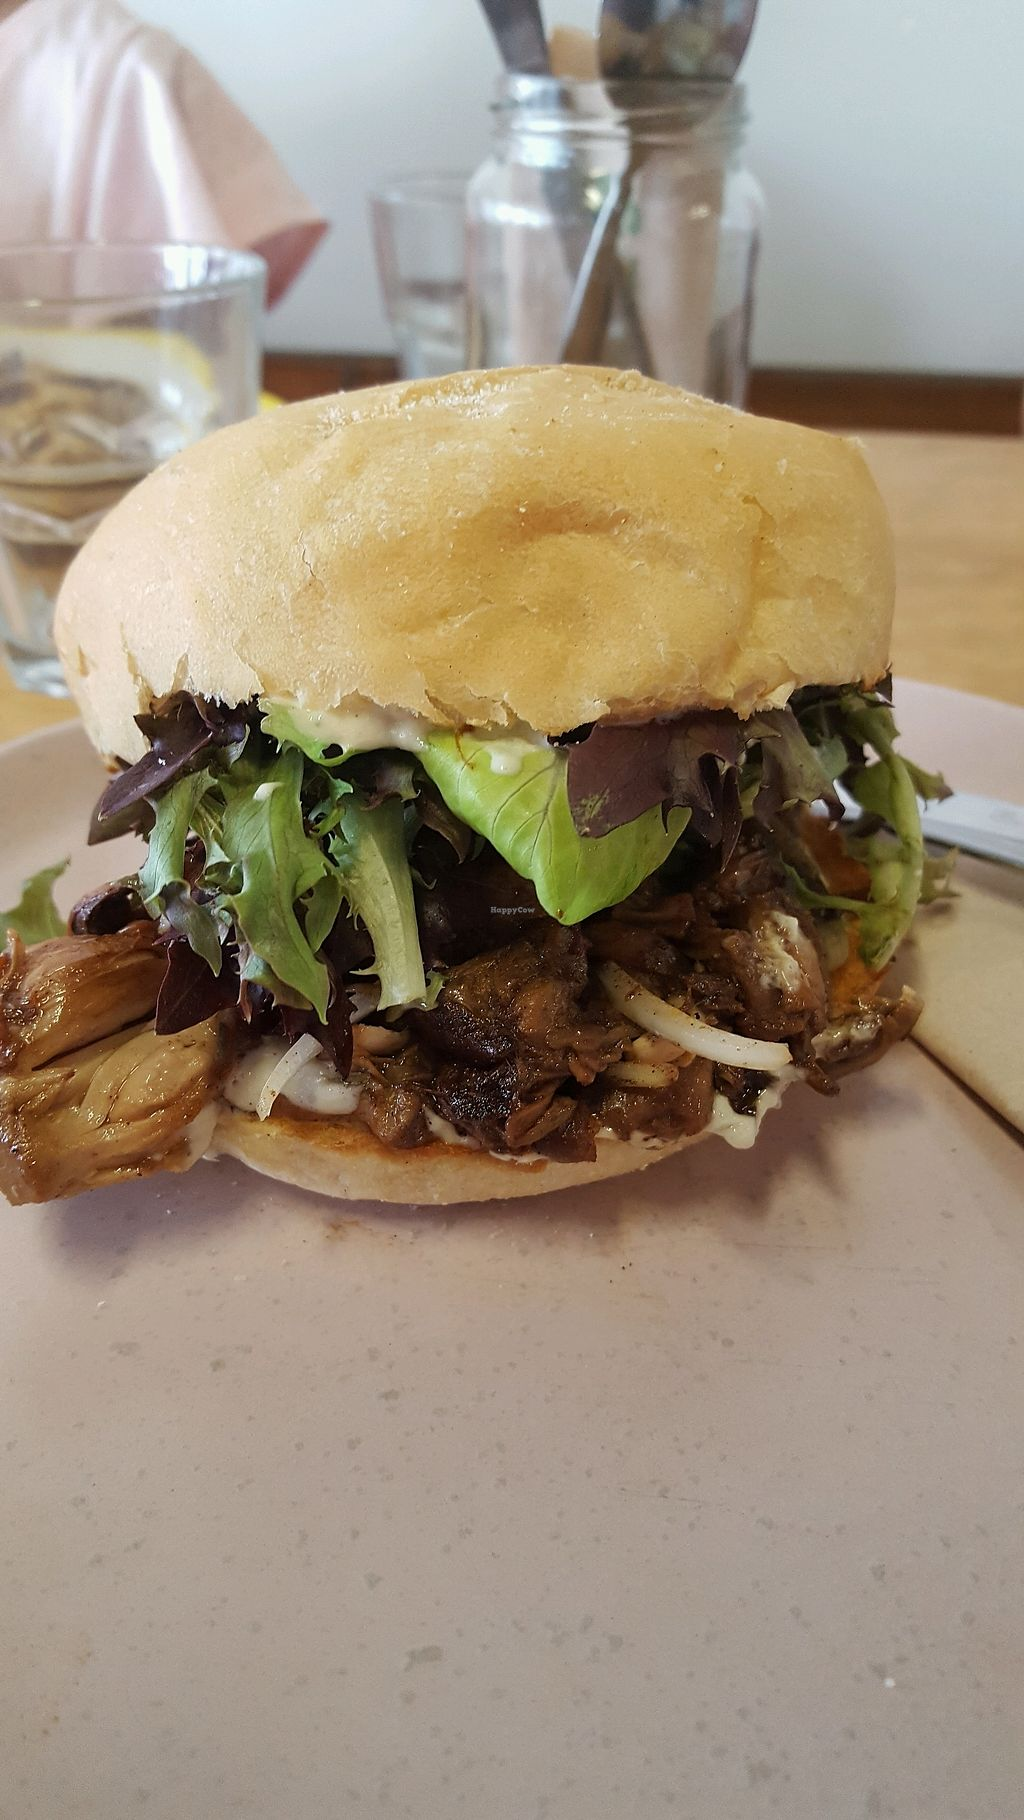 """Photo of The Nourished Eatery  by <a href=""""/members/profile/VegoRoboto"""">VegoRoboto</a> <br/>Jackfruit burger <br/> December 29, 2017  - <a href='/contact/abuse/image/75928/340267'>Report</a>"""